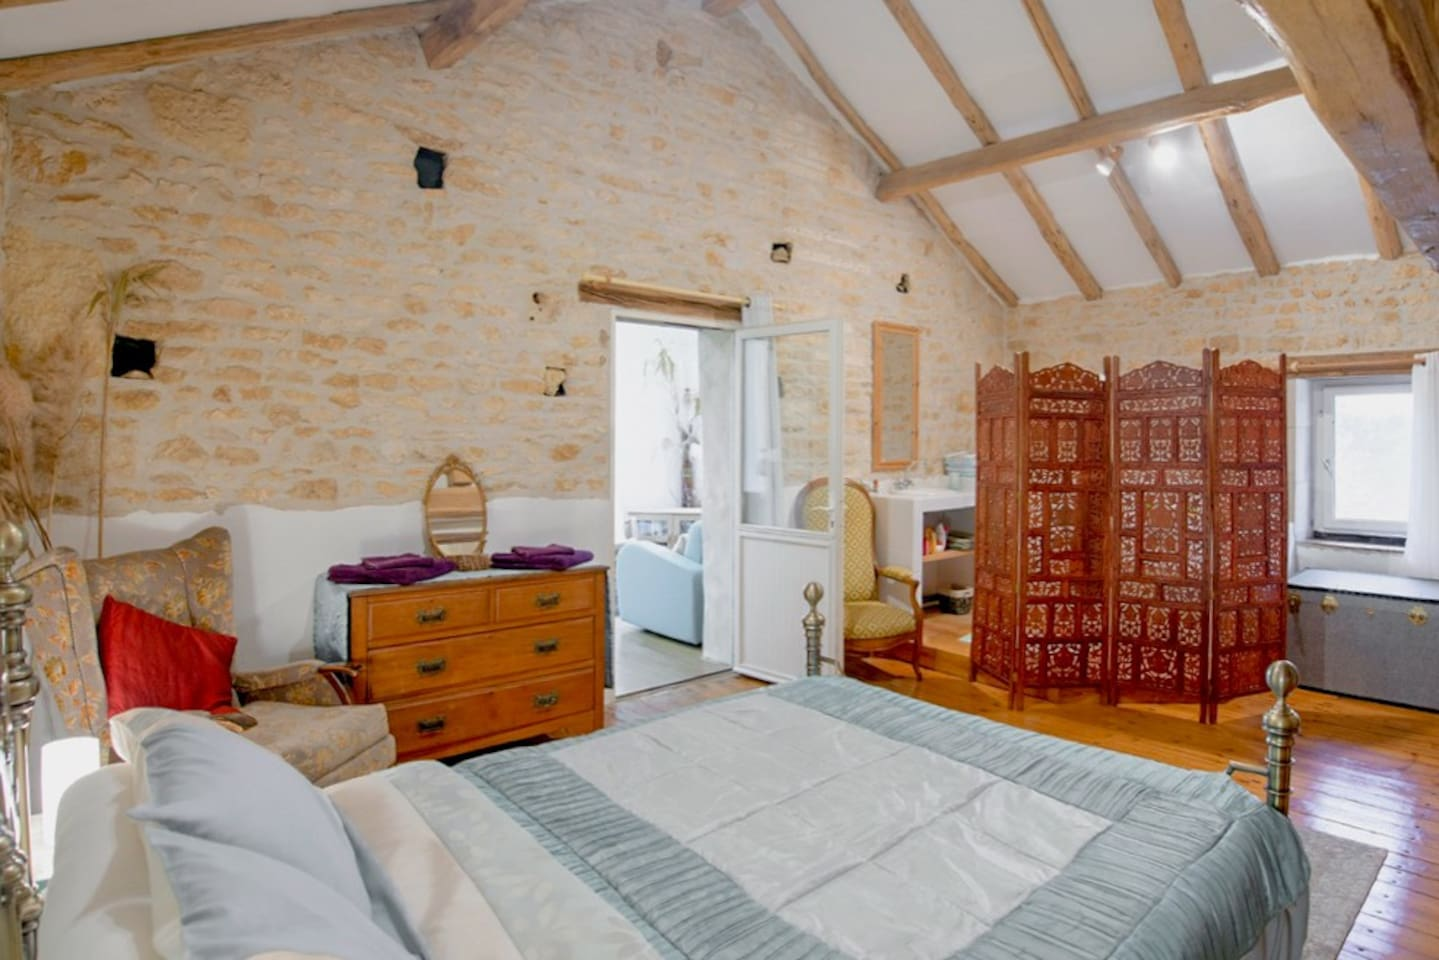 The Bedroom, with en-suite bath (obscured by the wooden screen) and separate shower room with toilet and washbasin. Door to the Studio/Lounge area, with TV (UK) and Blur-ray player. Exclusive to you, during your stay.